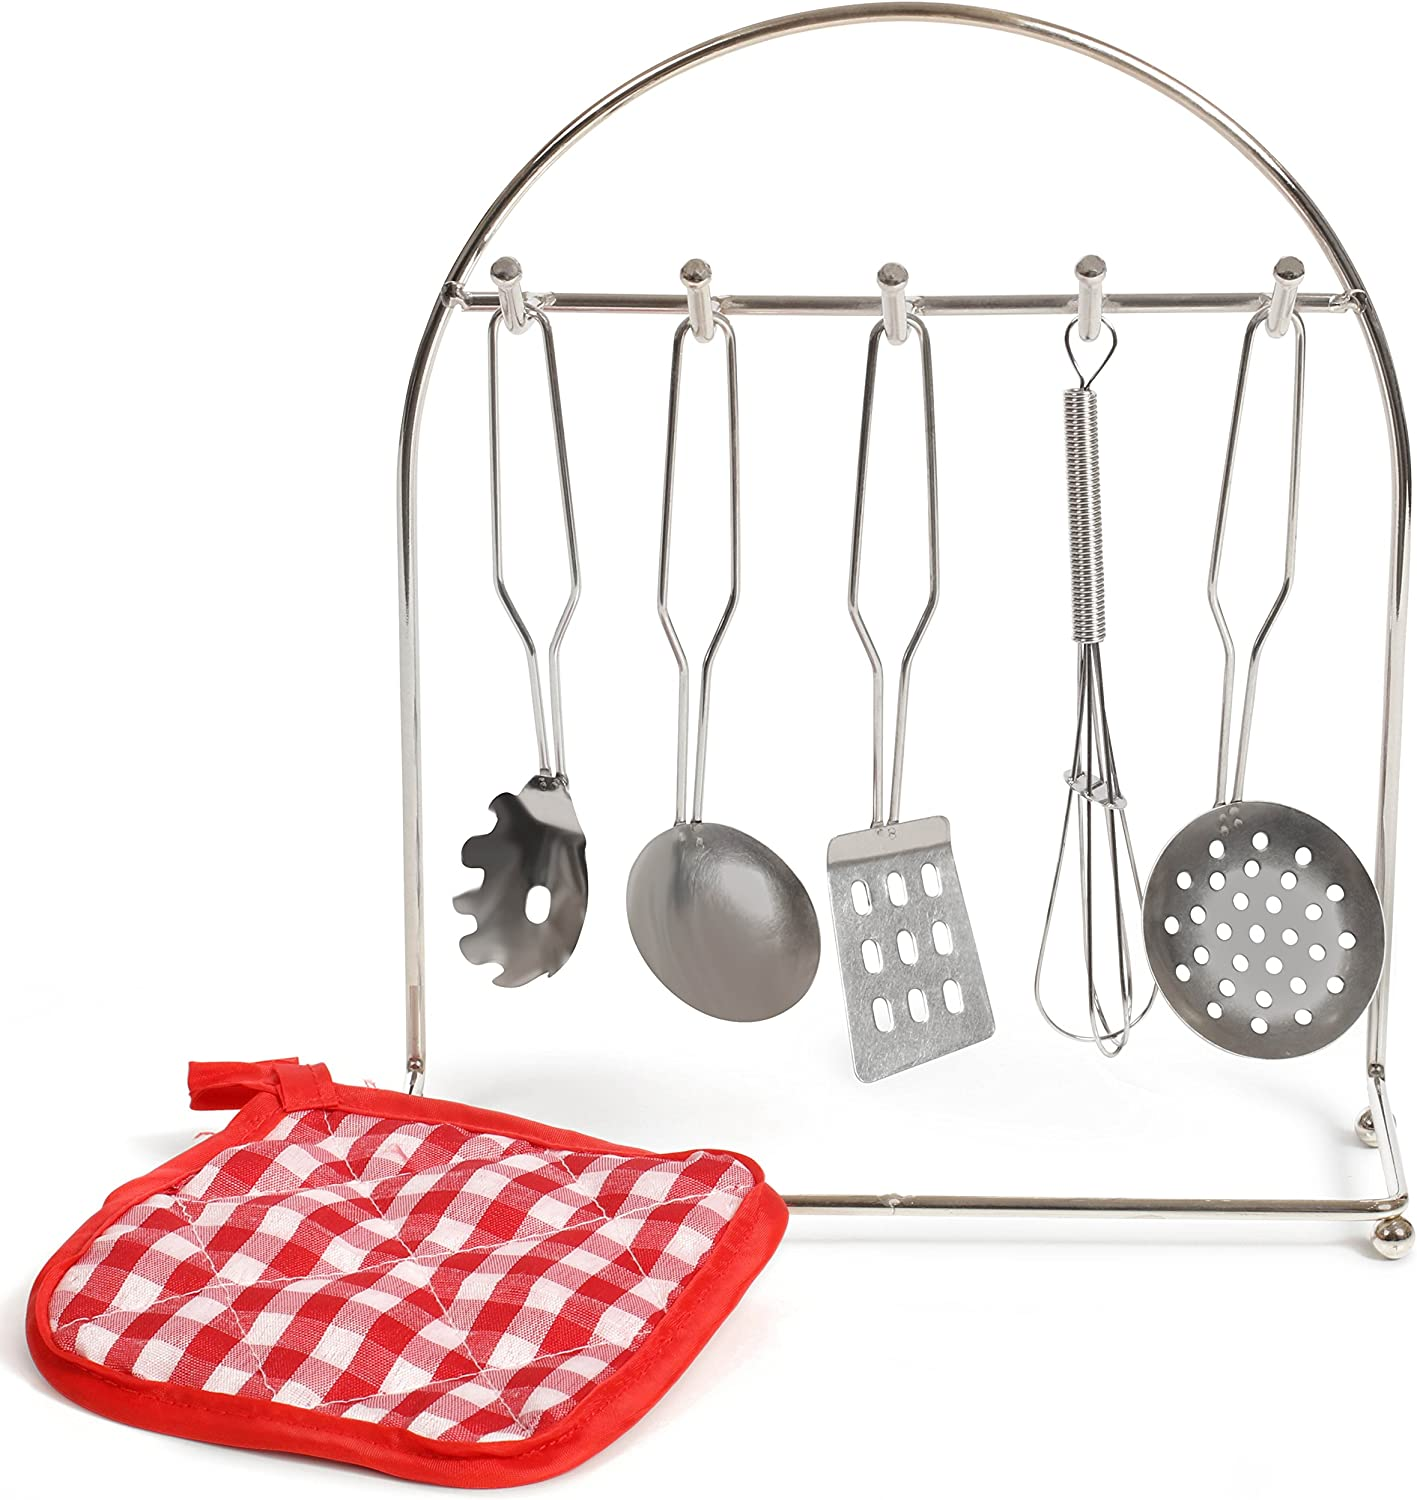 IQ Toys Pretend Play Cooking Utensils, 5 Piece Metal Cookware Set Includes Hanging Rack and Hot Pad Chef Set for Kids Kitchen